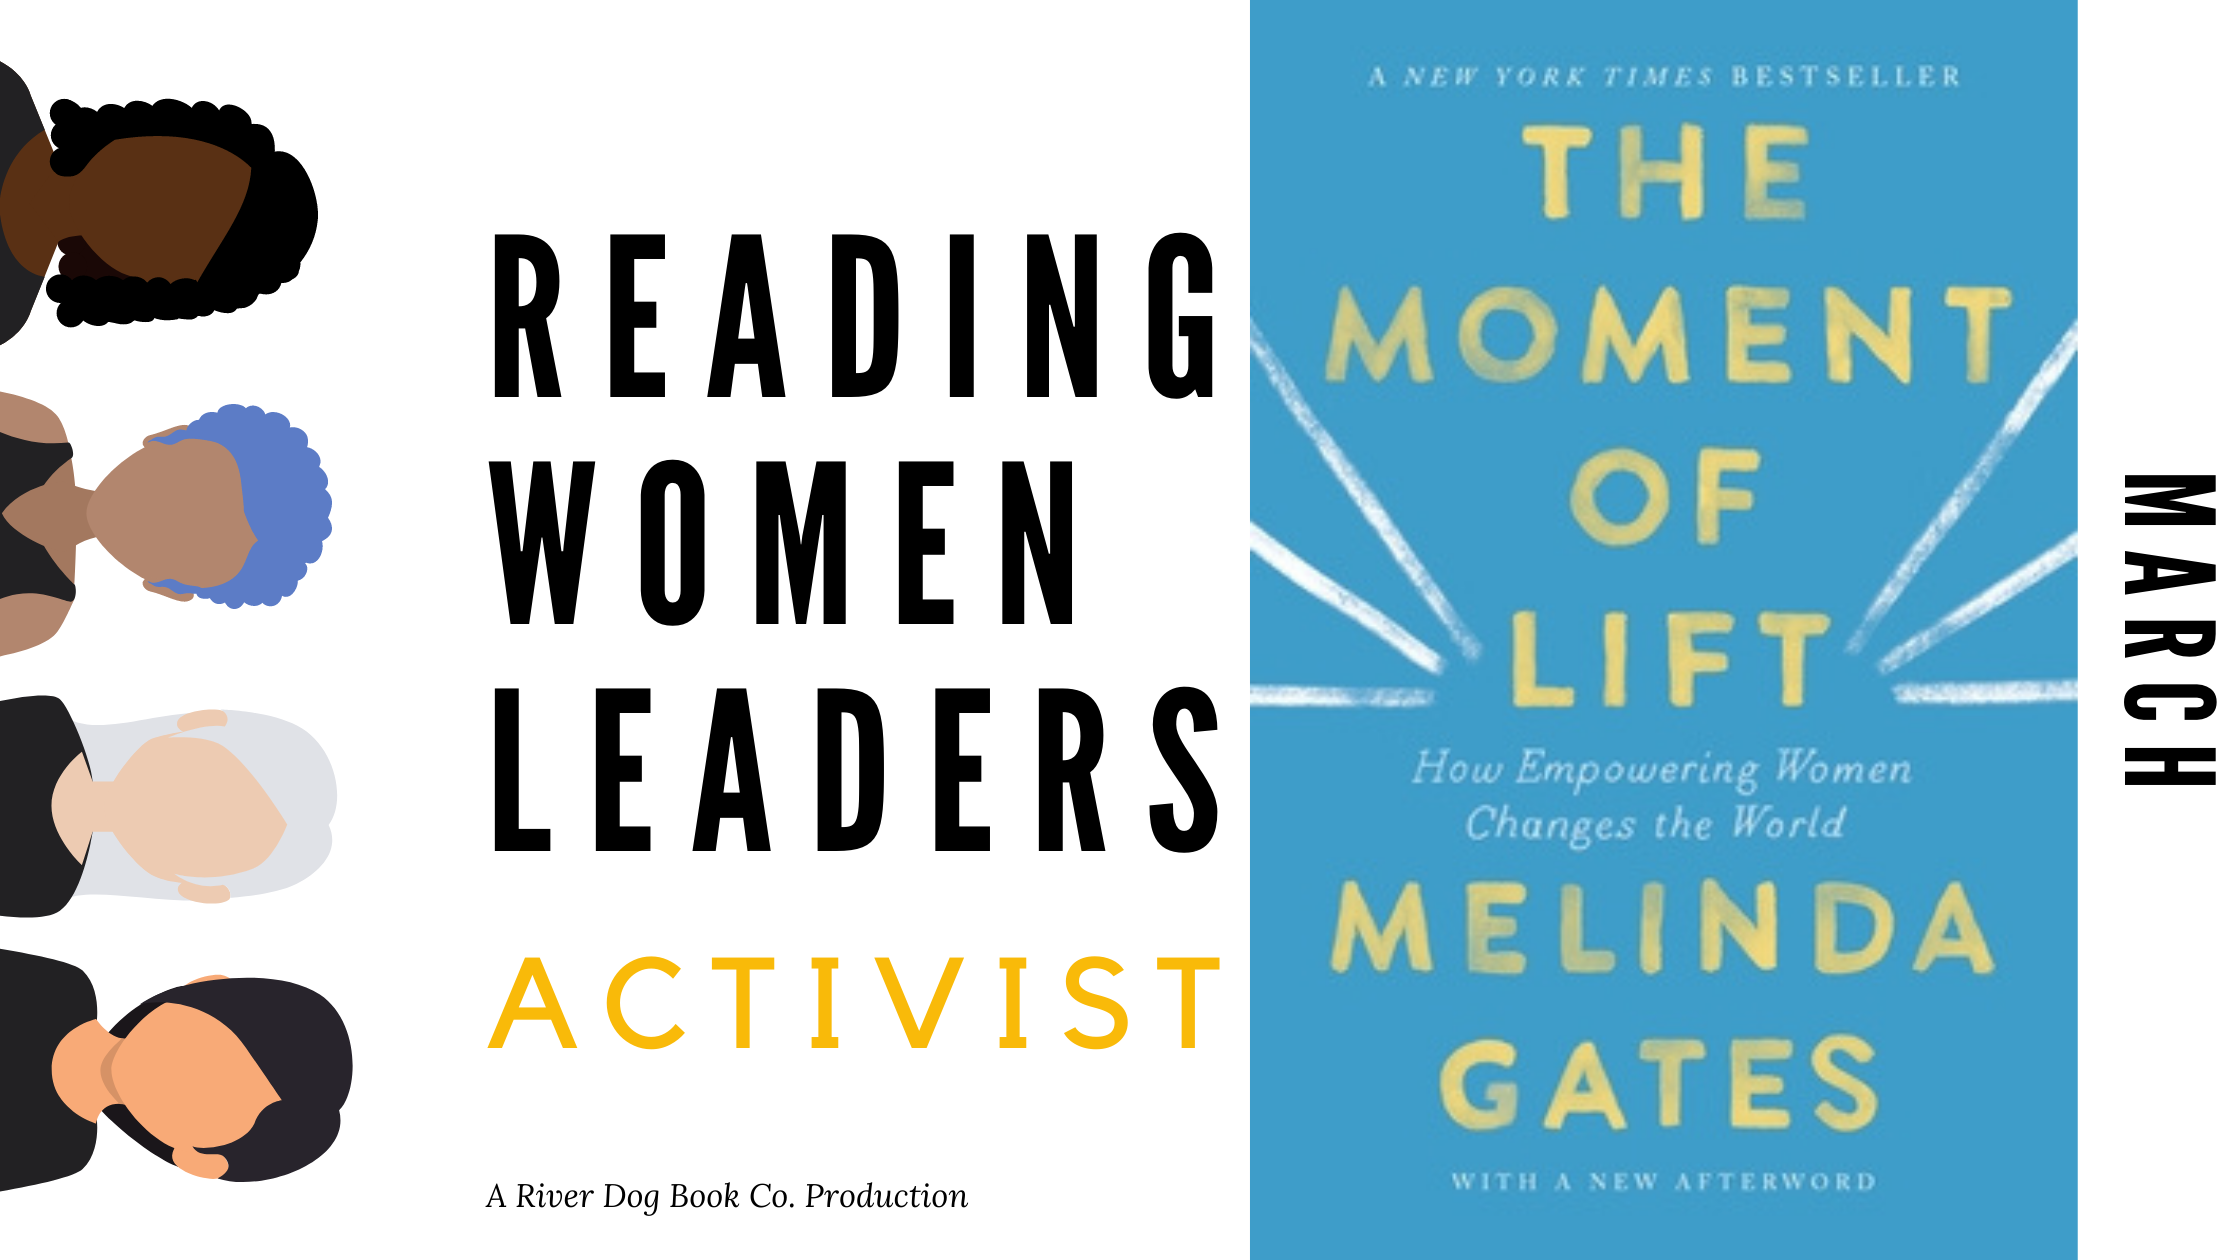 Reading Women Leaders: Activist